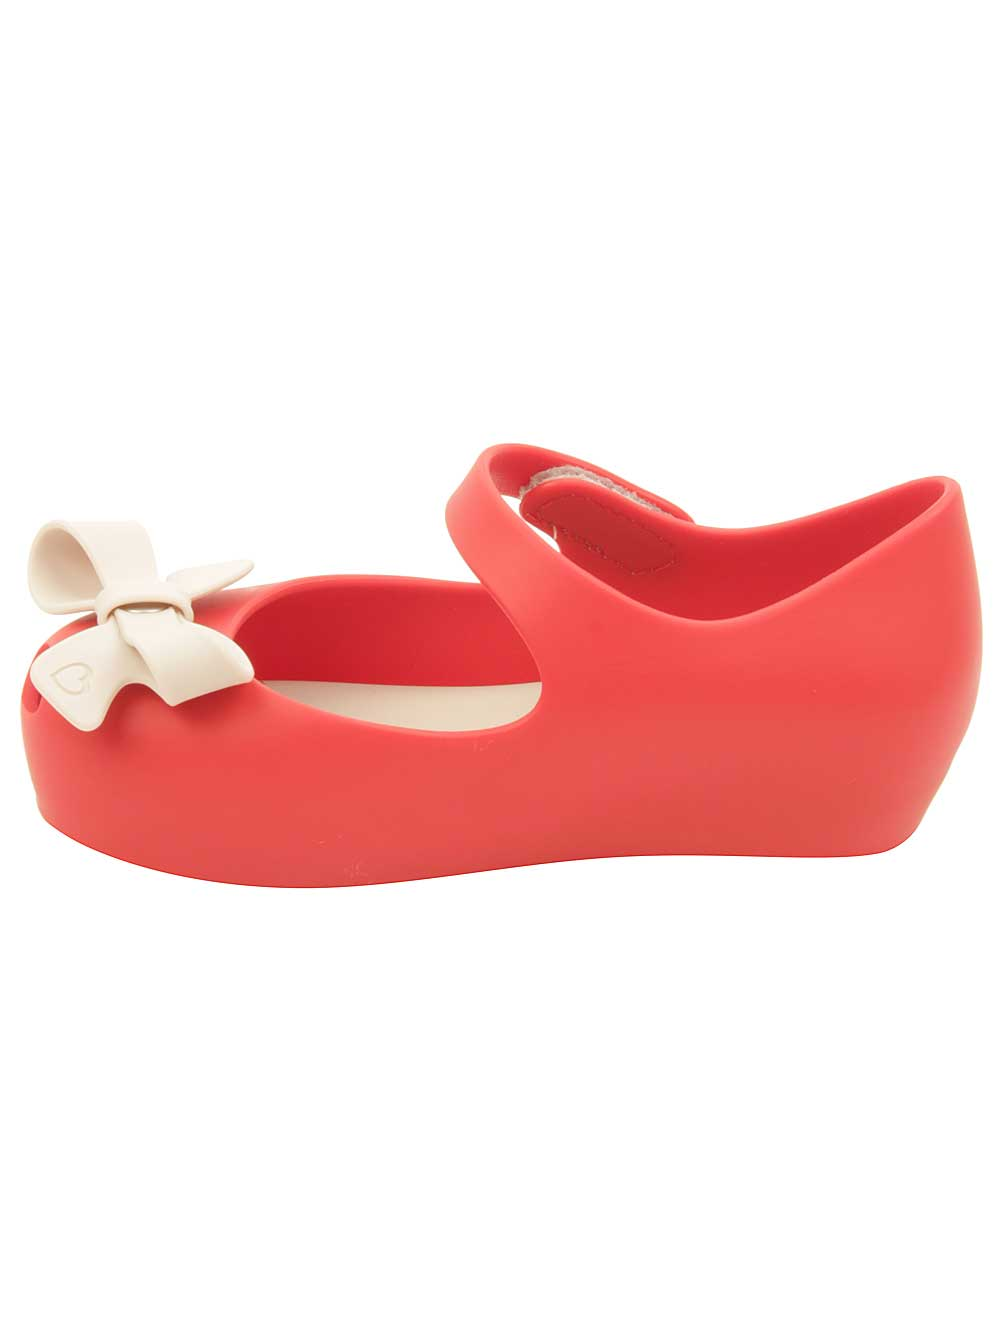 MINI ultragirl bow - red